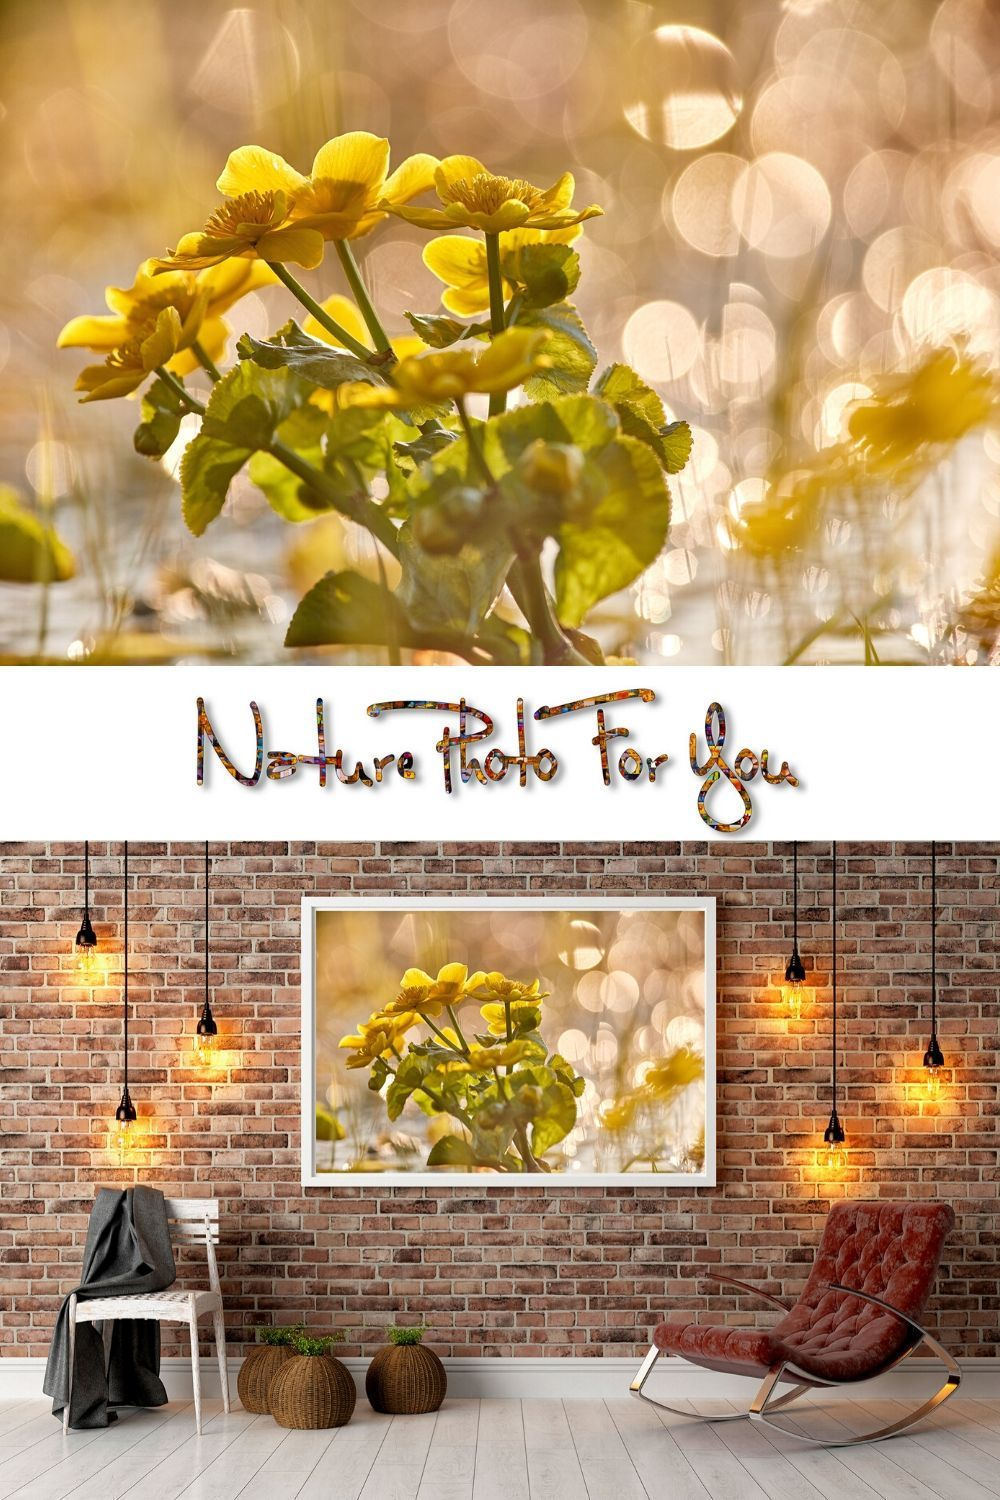 Yellow Wild Flower Photo Spring Theme Floral Theme Nature Theme Decor 1st Anniversary Gift Chiropractor Gift Gift For Mother Bbf Gift Flower Photos Photo Wall Art Spring Theme